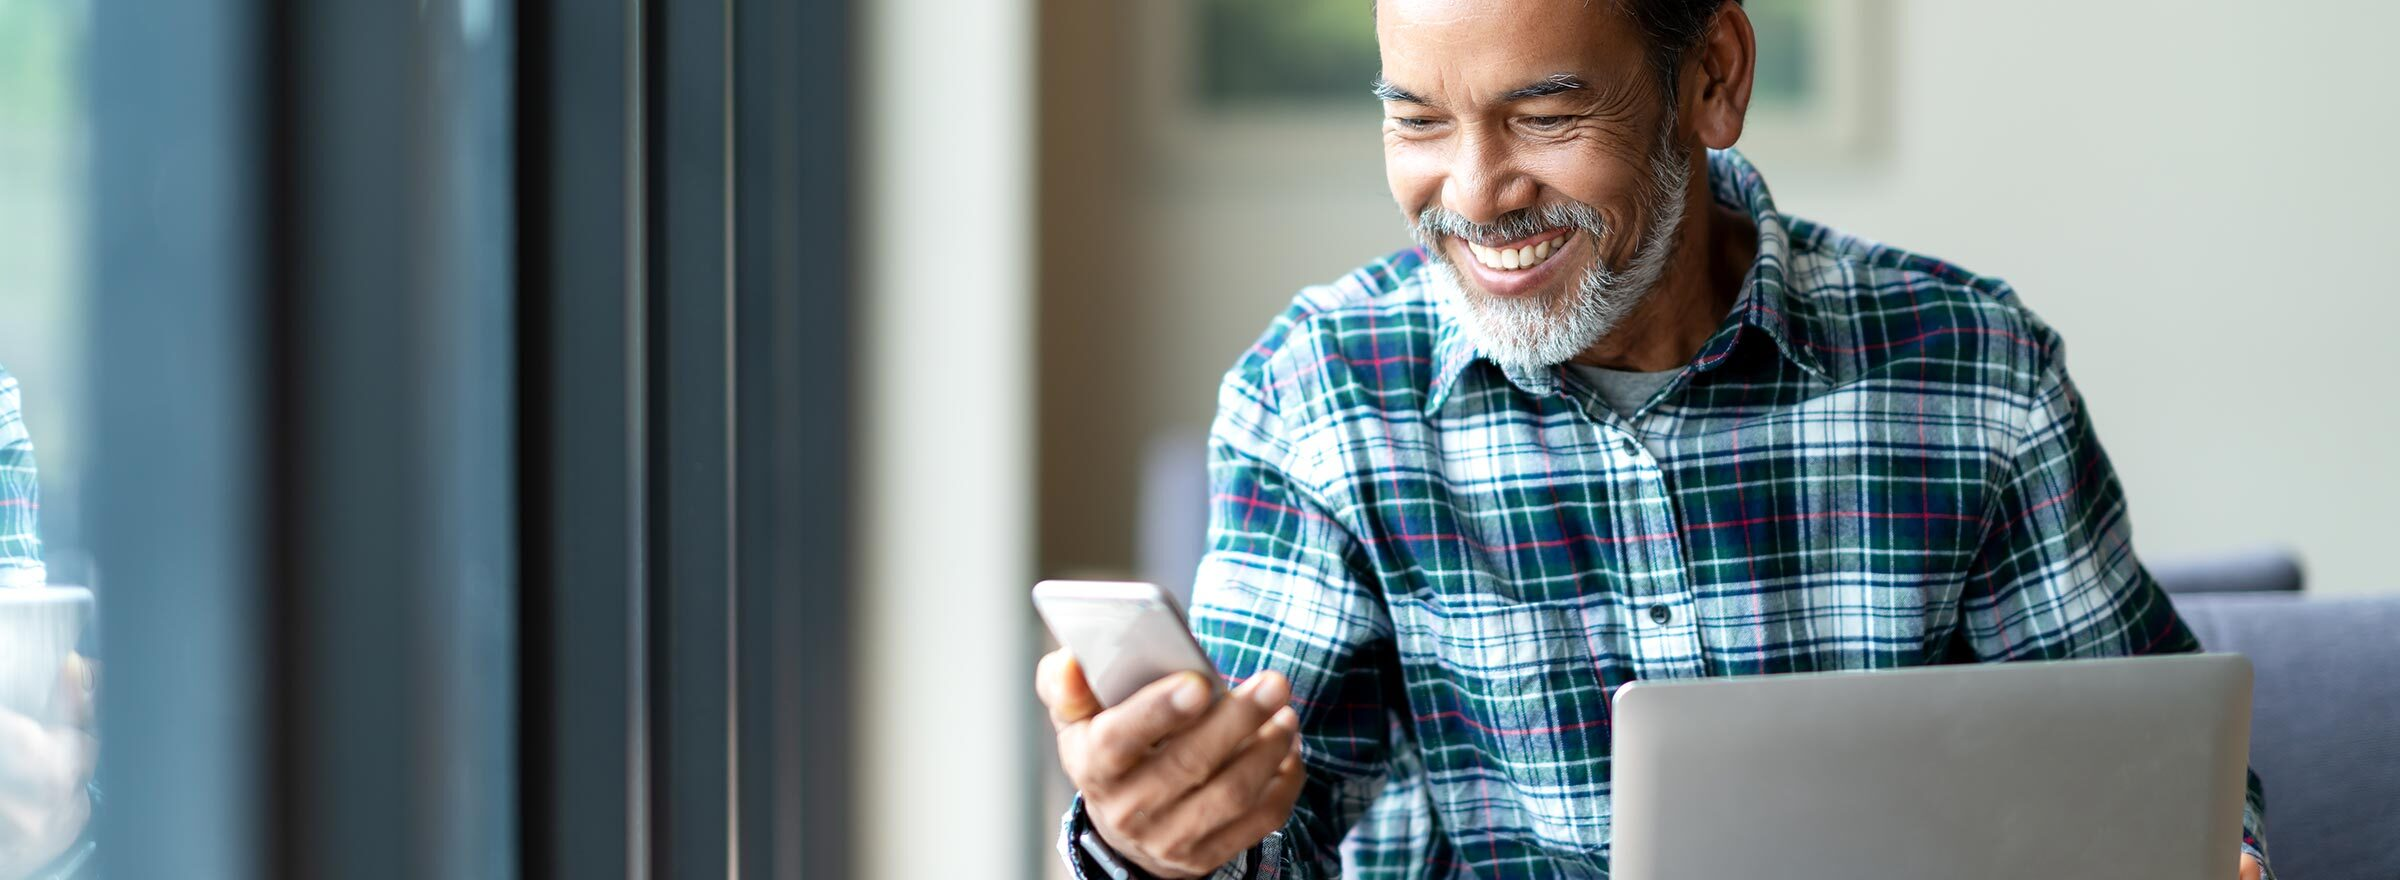 man sitting at laptop and smiling at smartphone